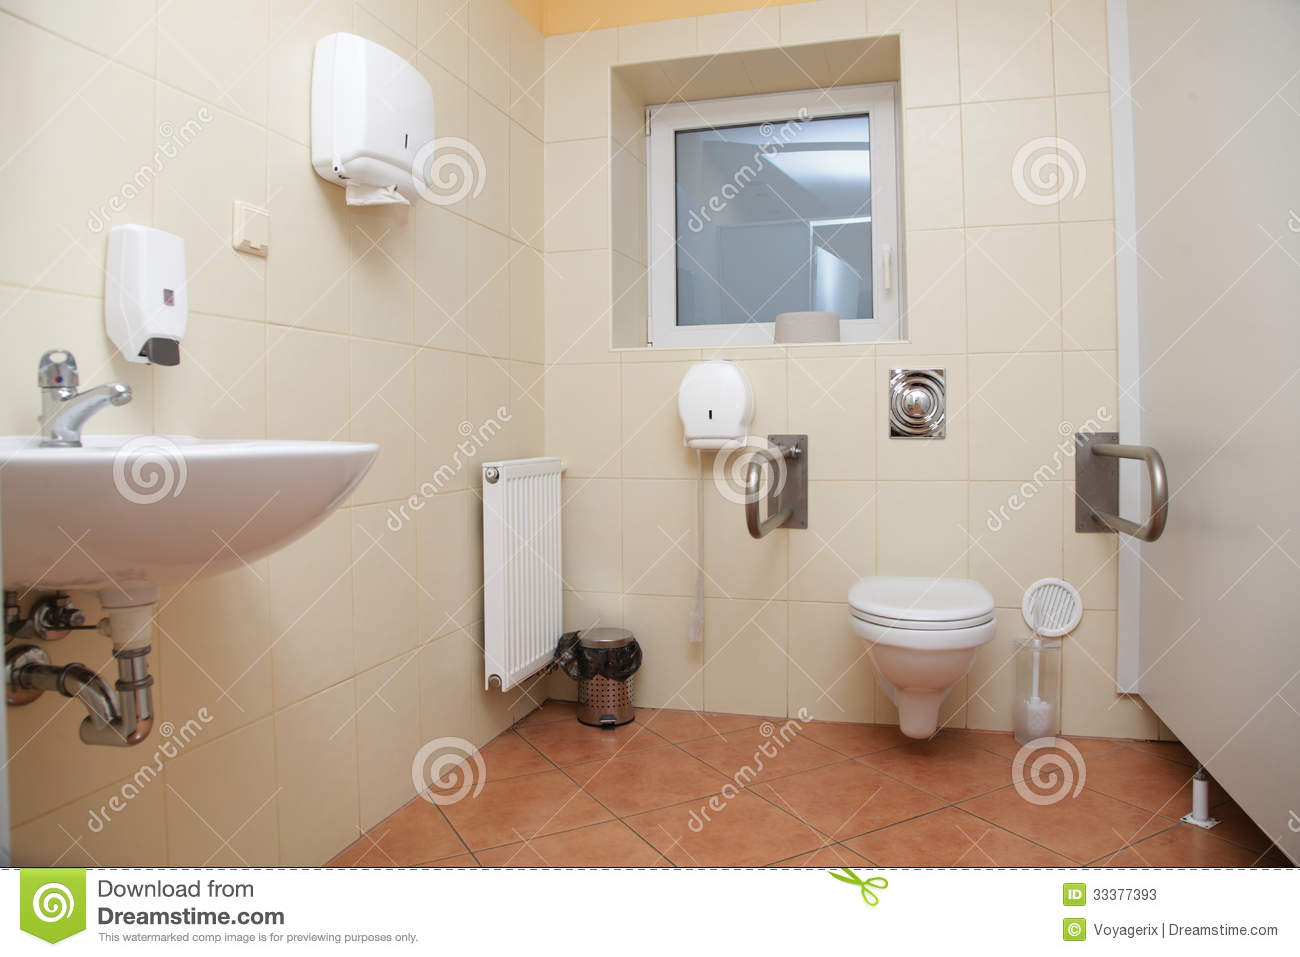 Toilet For Disabled People Stock Image Image Of Paper